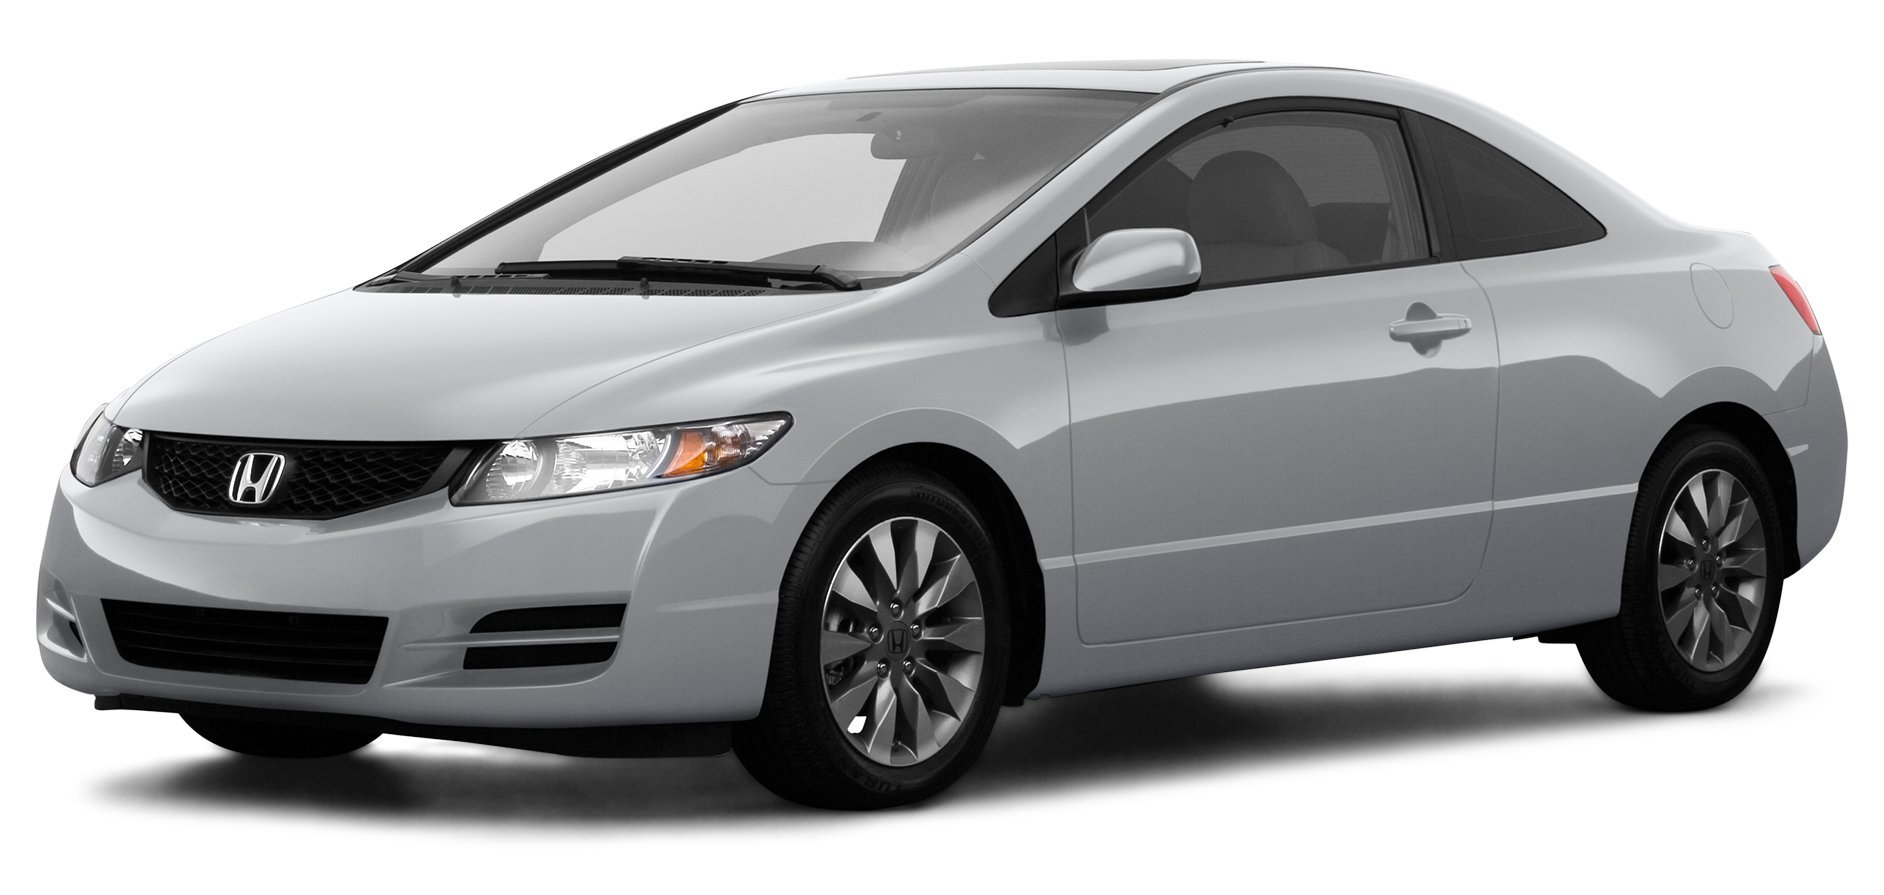 2009 honda accord reviews images and specs vehicles. Black Bedroom Furniture Sets. Home Design Ideas